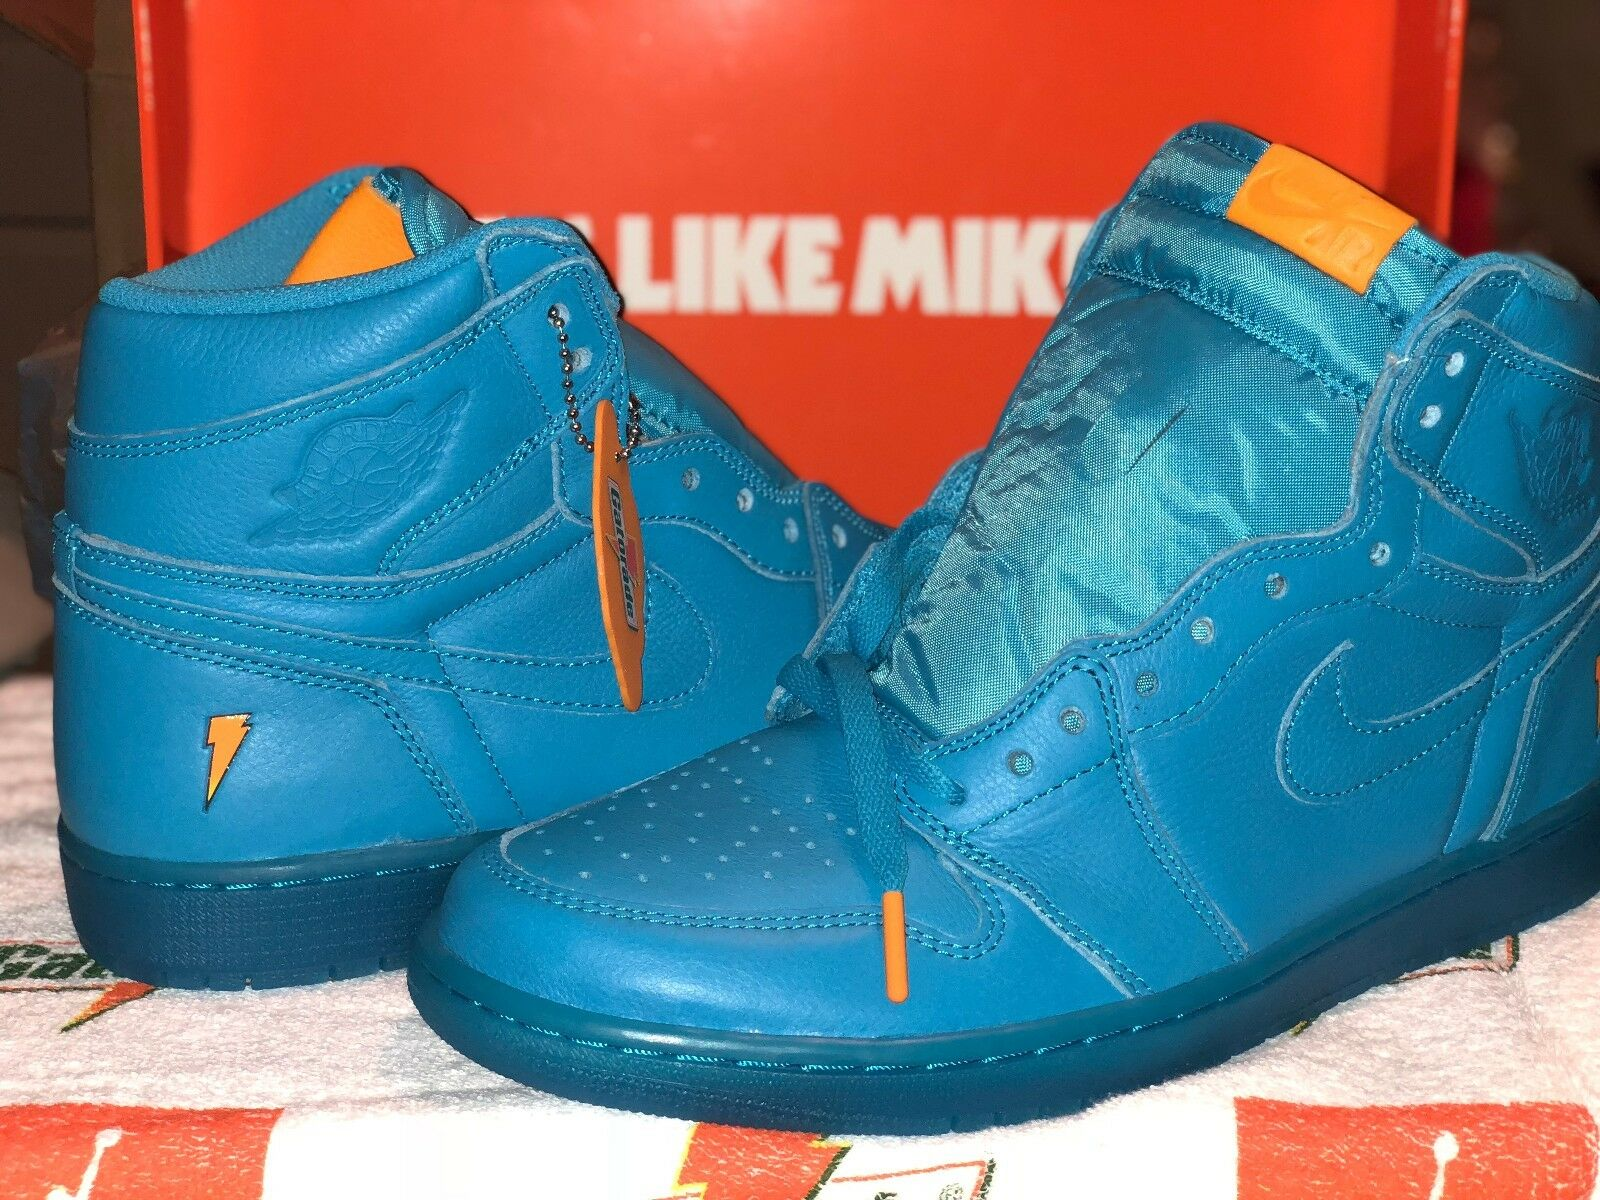 941ac1d8e4e1 ... AIR JORDAN I (1) COOL COOL COOL BLUE RETRO HIGH OG GATORADE PACK NIKE  ...